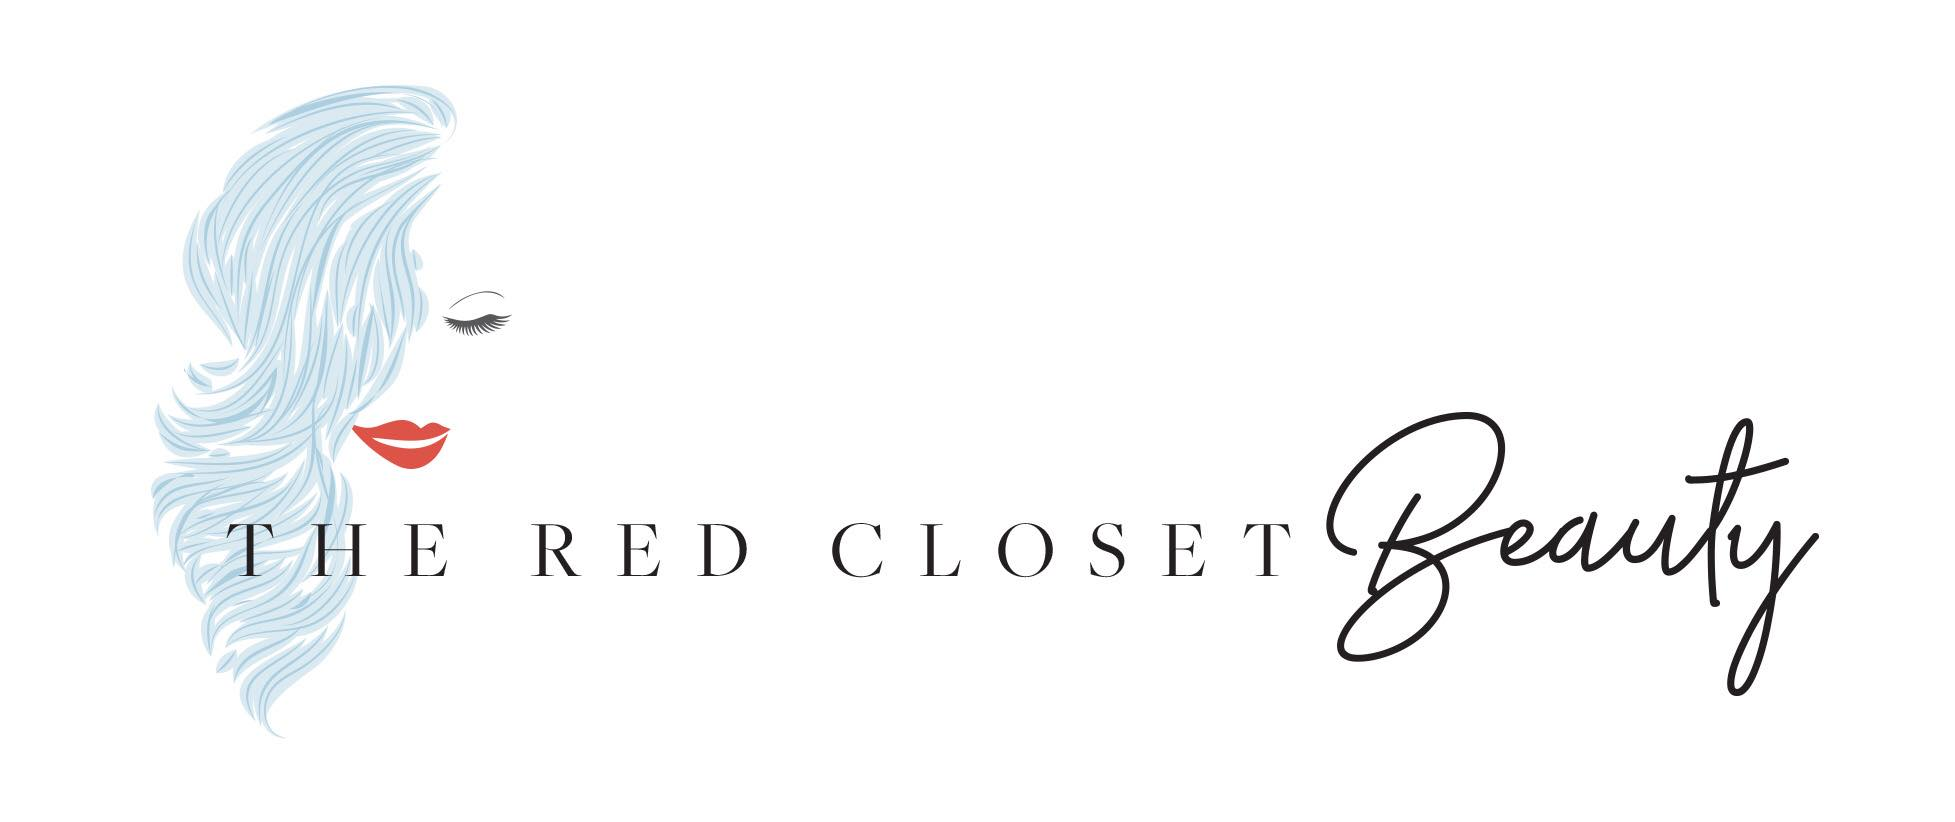 The Red Closet image